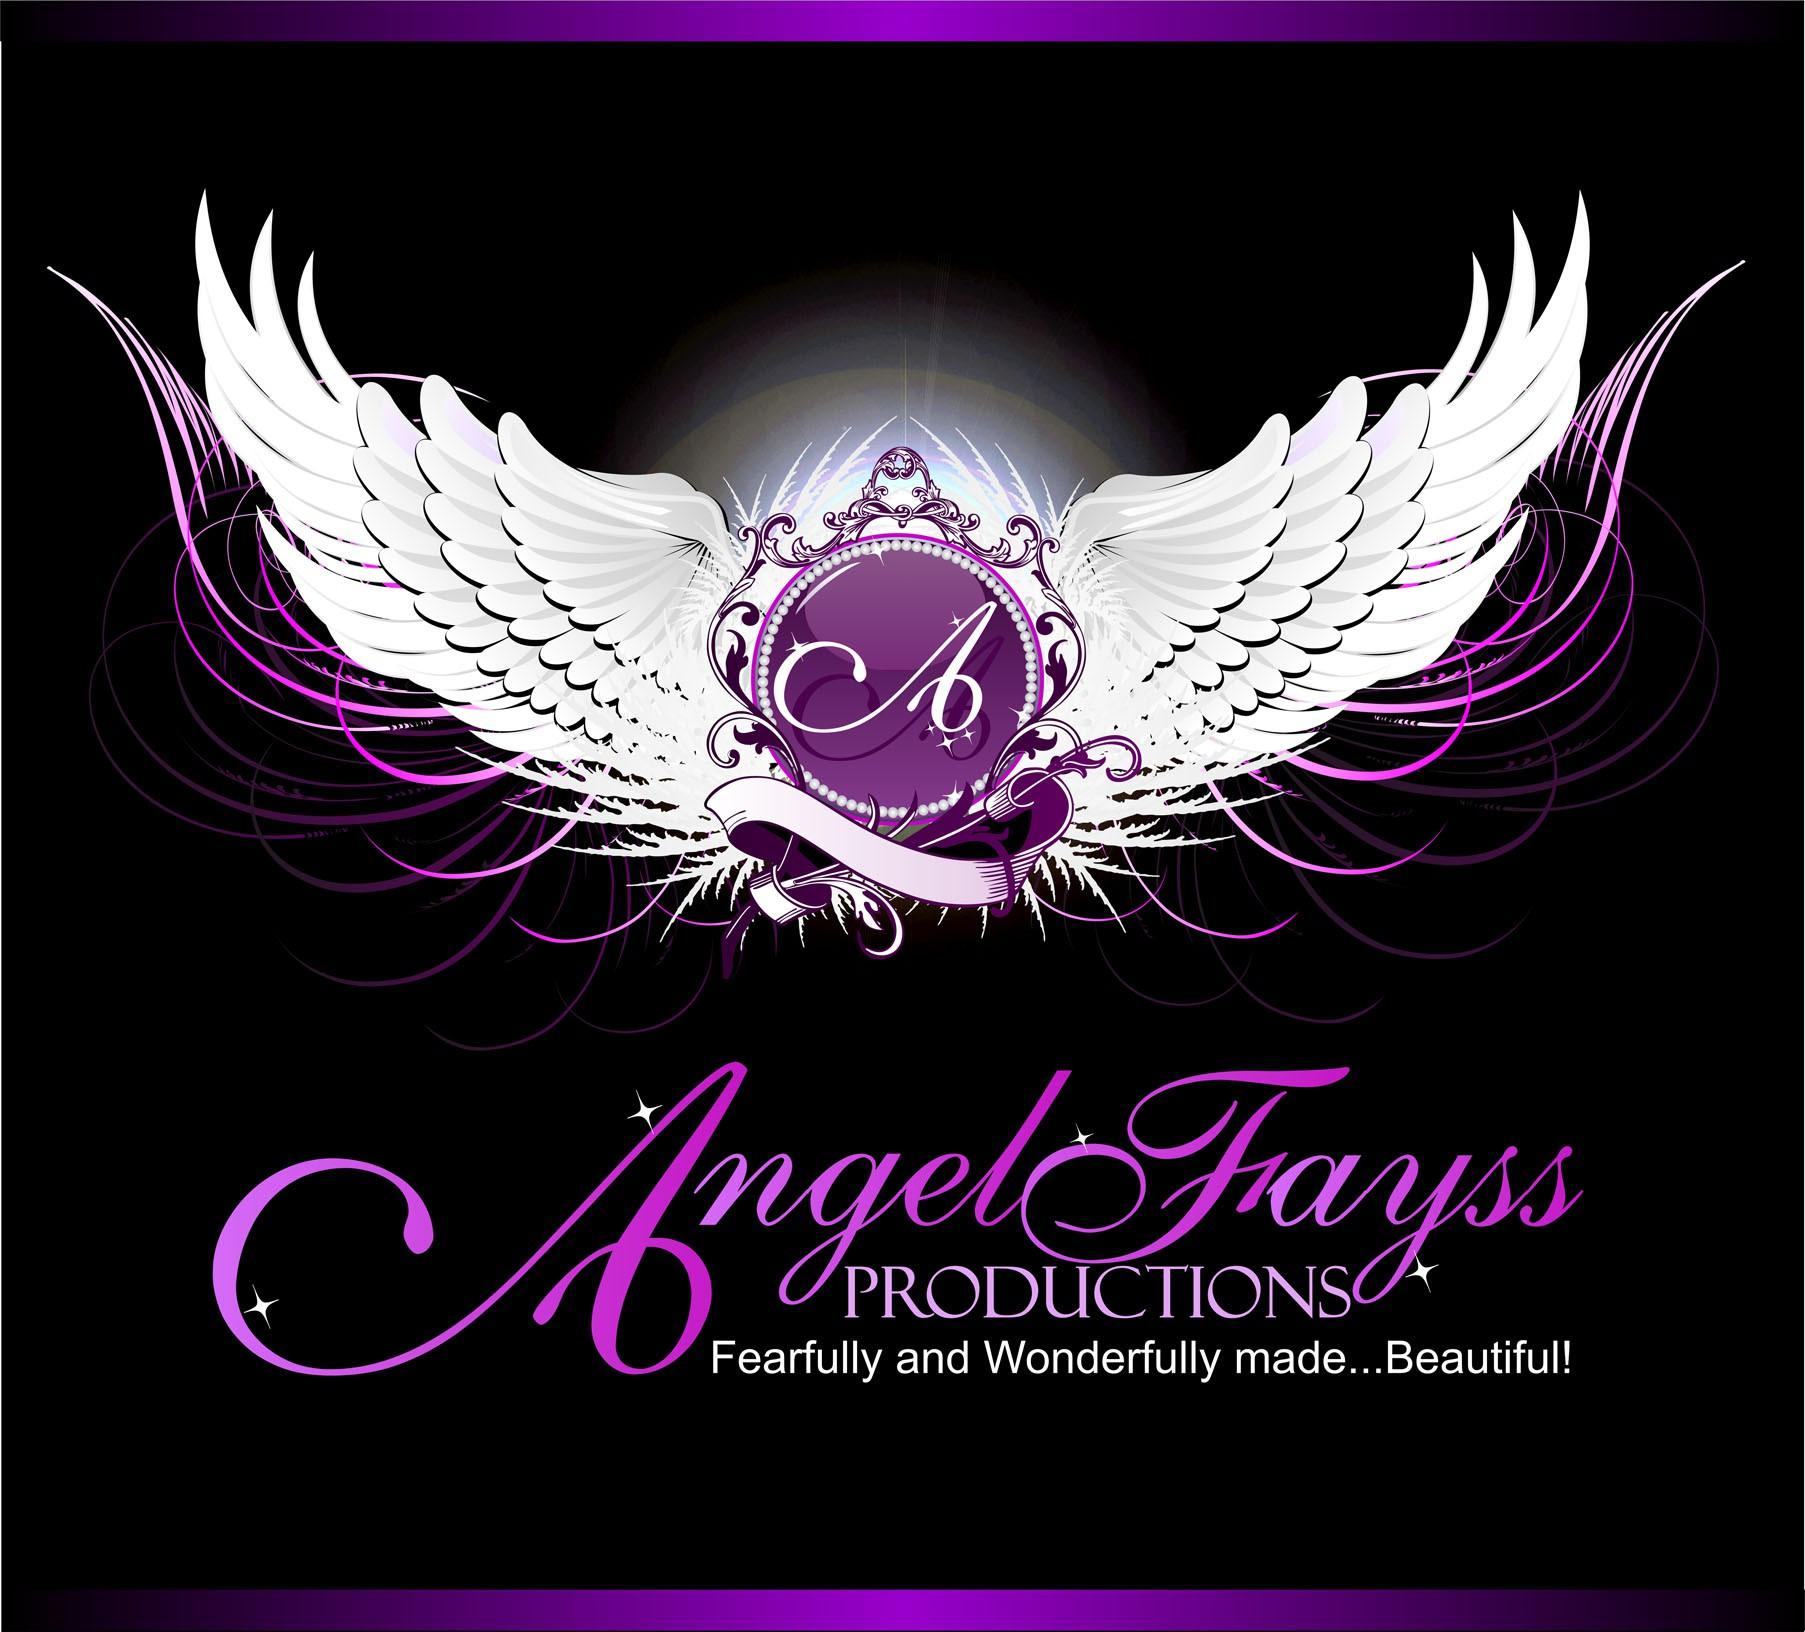 Help AngelFayss Productions  with a new logo